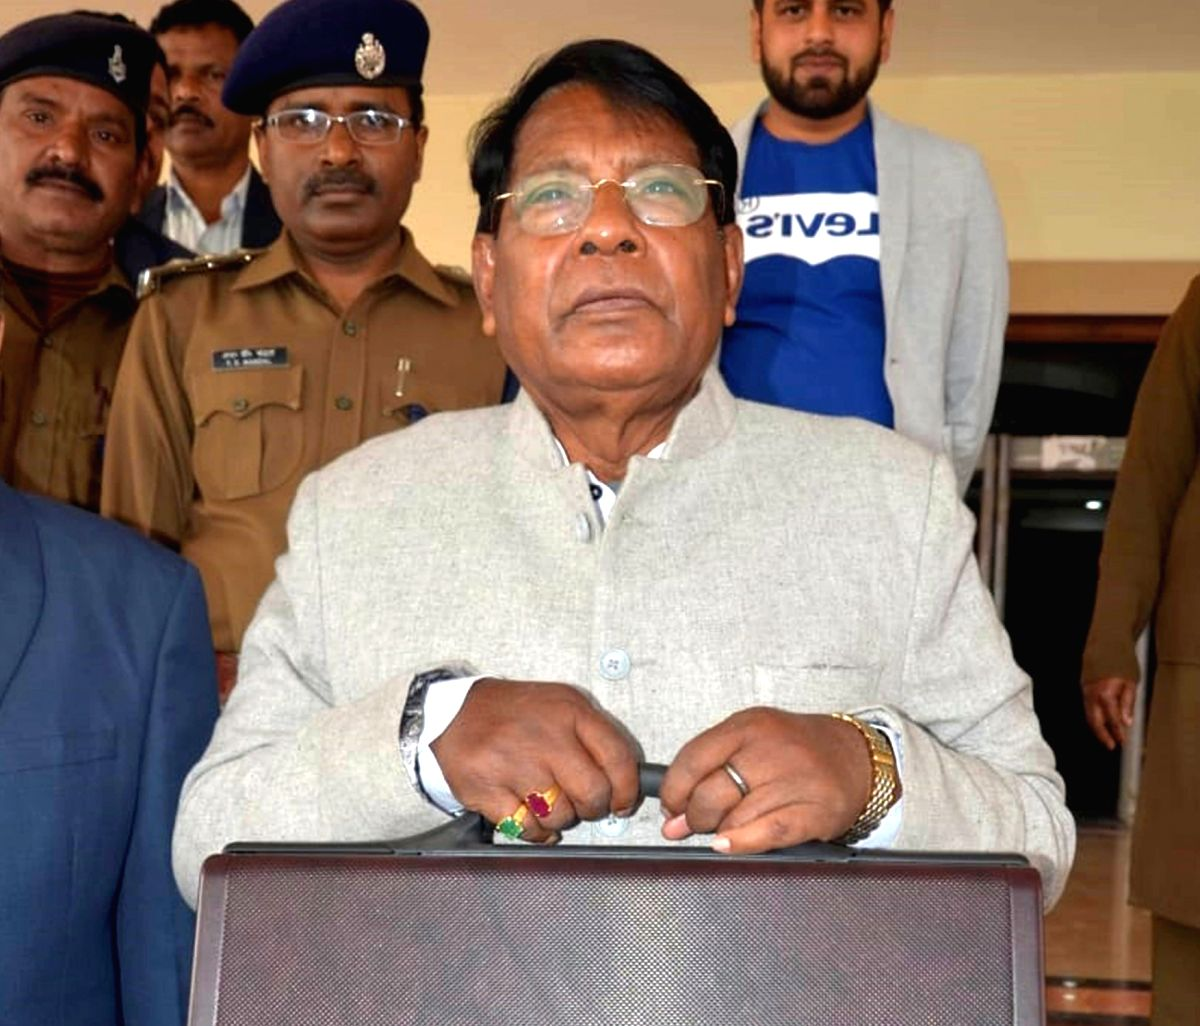 Ranchi, Aug 26 (IANS) Jharkhand Finance Minister Rameshwar Oraon has said that hotels and malls should be reopened in the state.